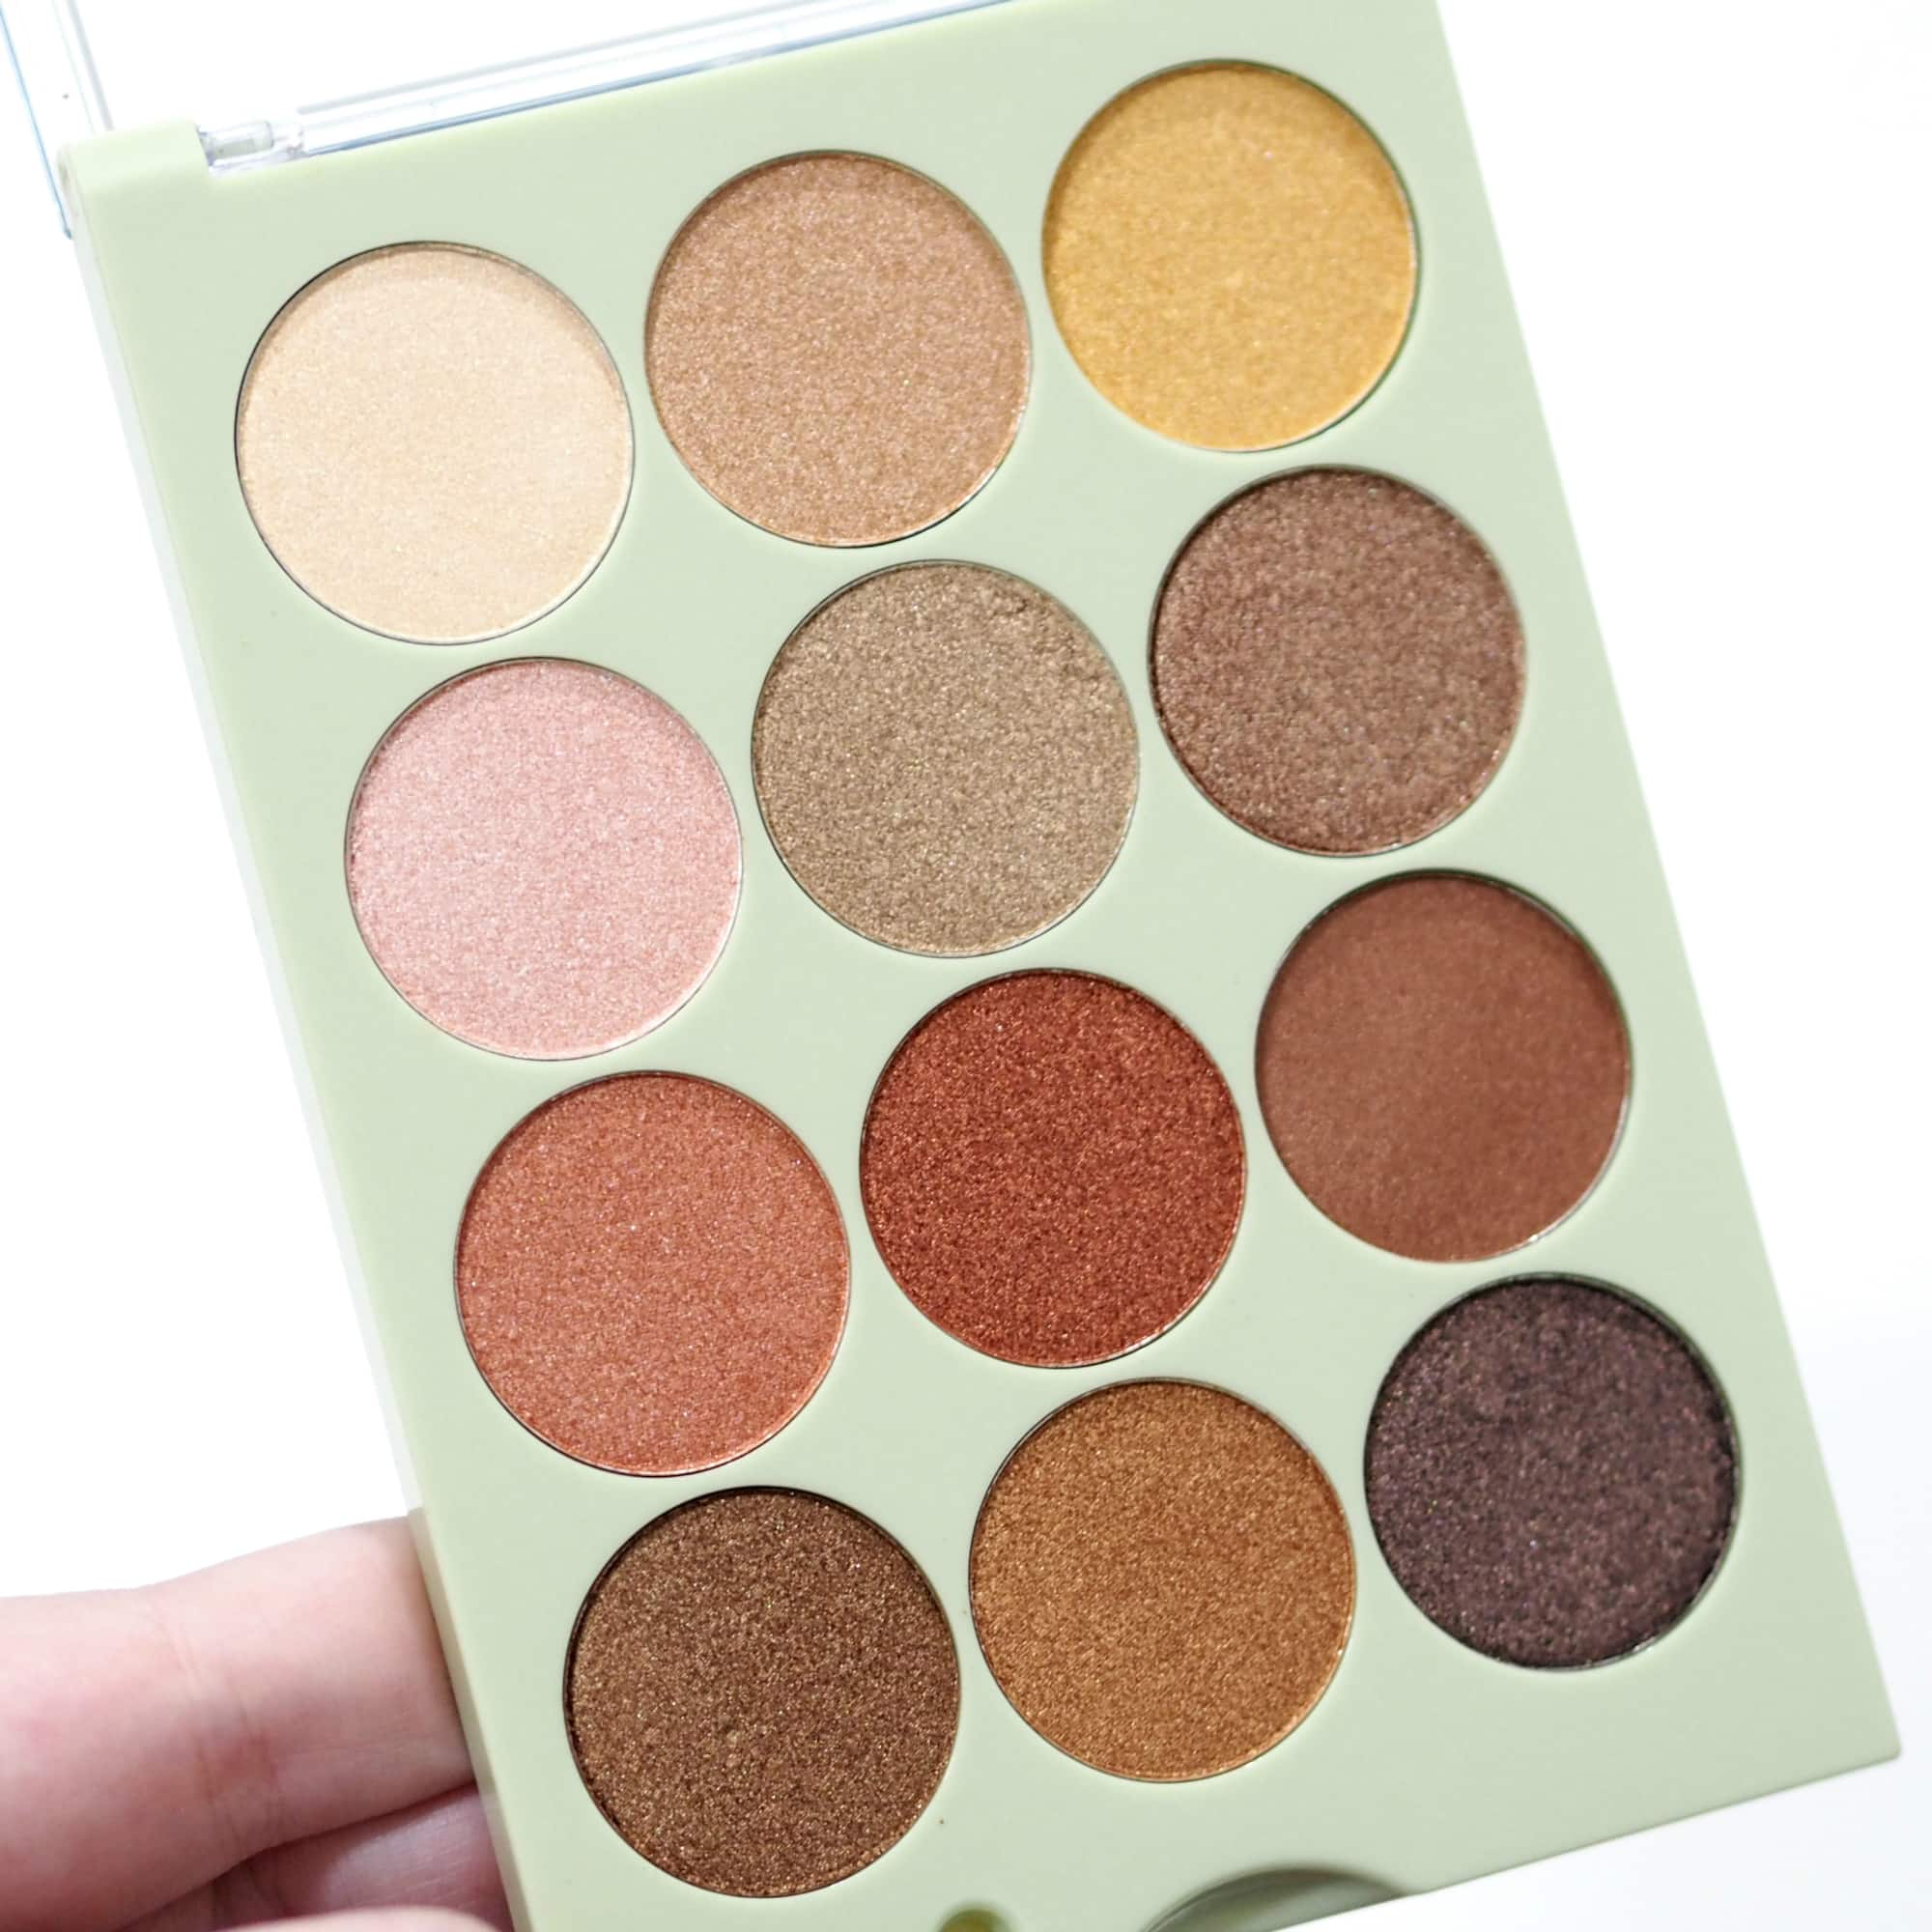 Review and Swatches of the Pixi Eye Reflections Shadow Palettes with the Natural Beauty Palette and the Reflex Light Palette.